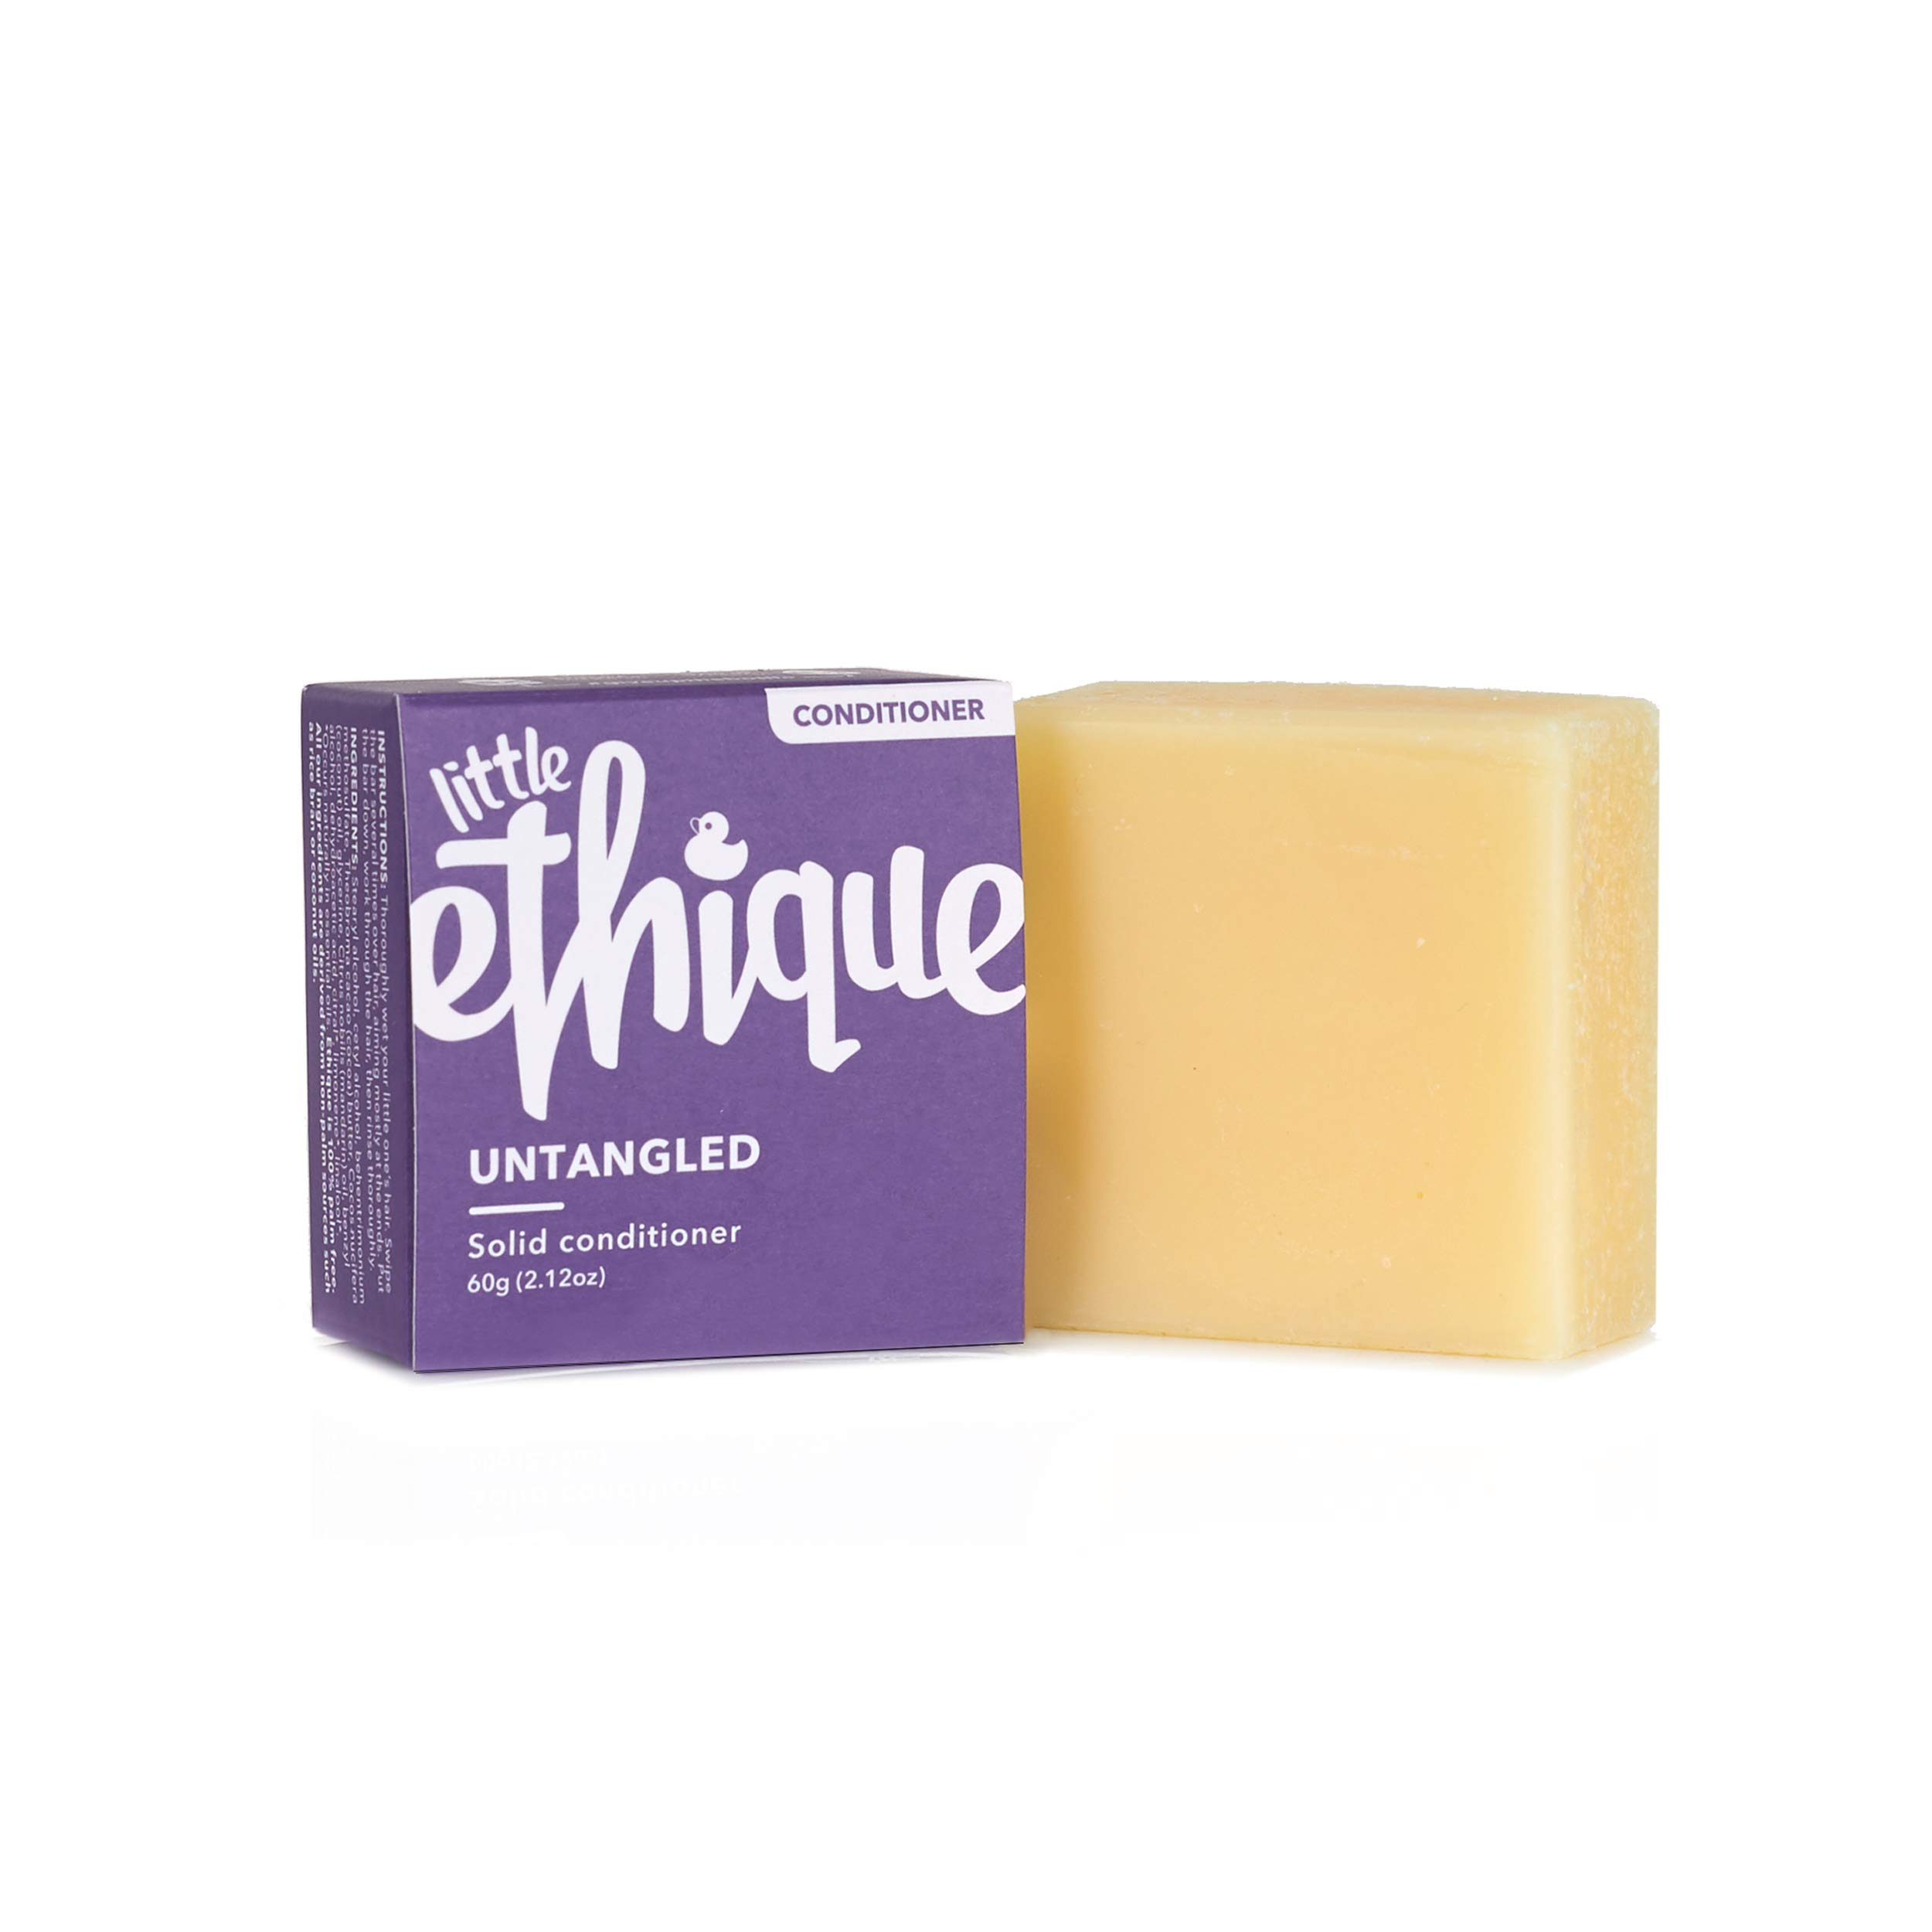 Ethique Eco-Friendly Conditioner Bar for Little Ones, Untangled - Sustainable Baby & Kids Detangling Conditioner, Plastic Free, Soap Free, Vegan, Plant Based, 100% Compostable and Zero Waste, 2.12oz